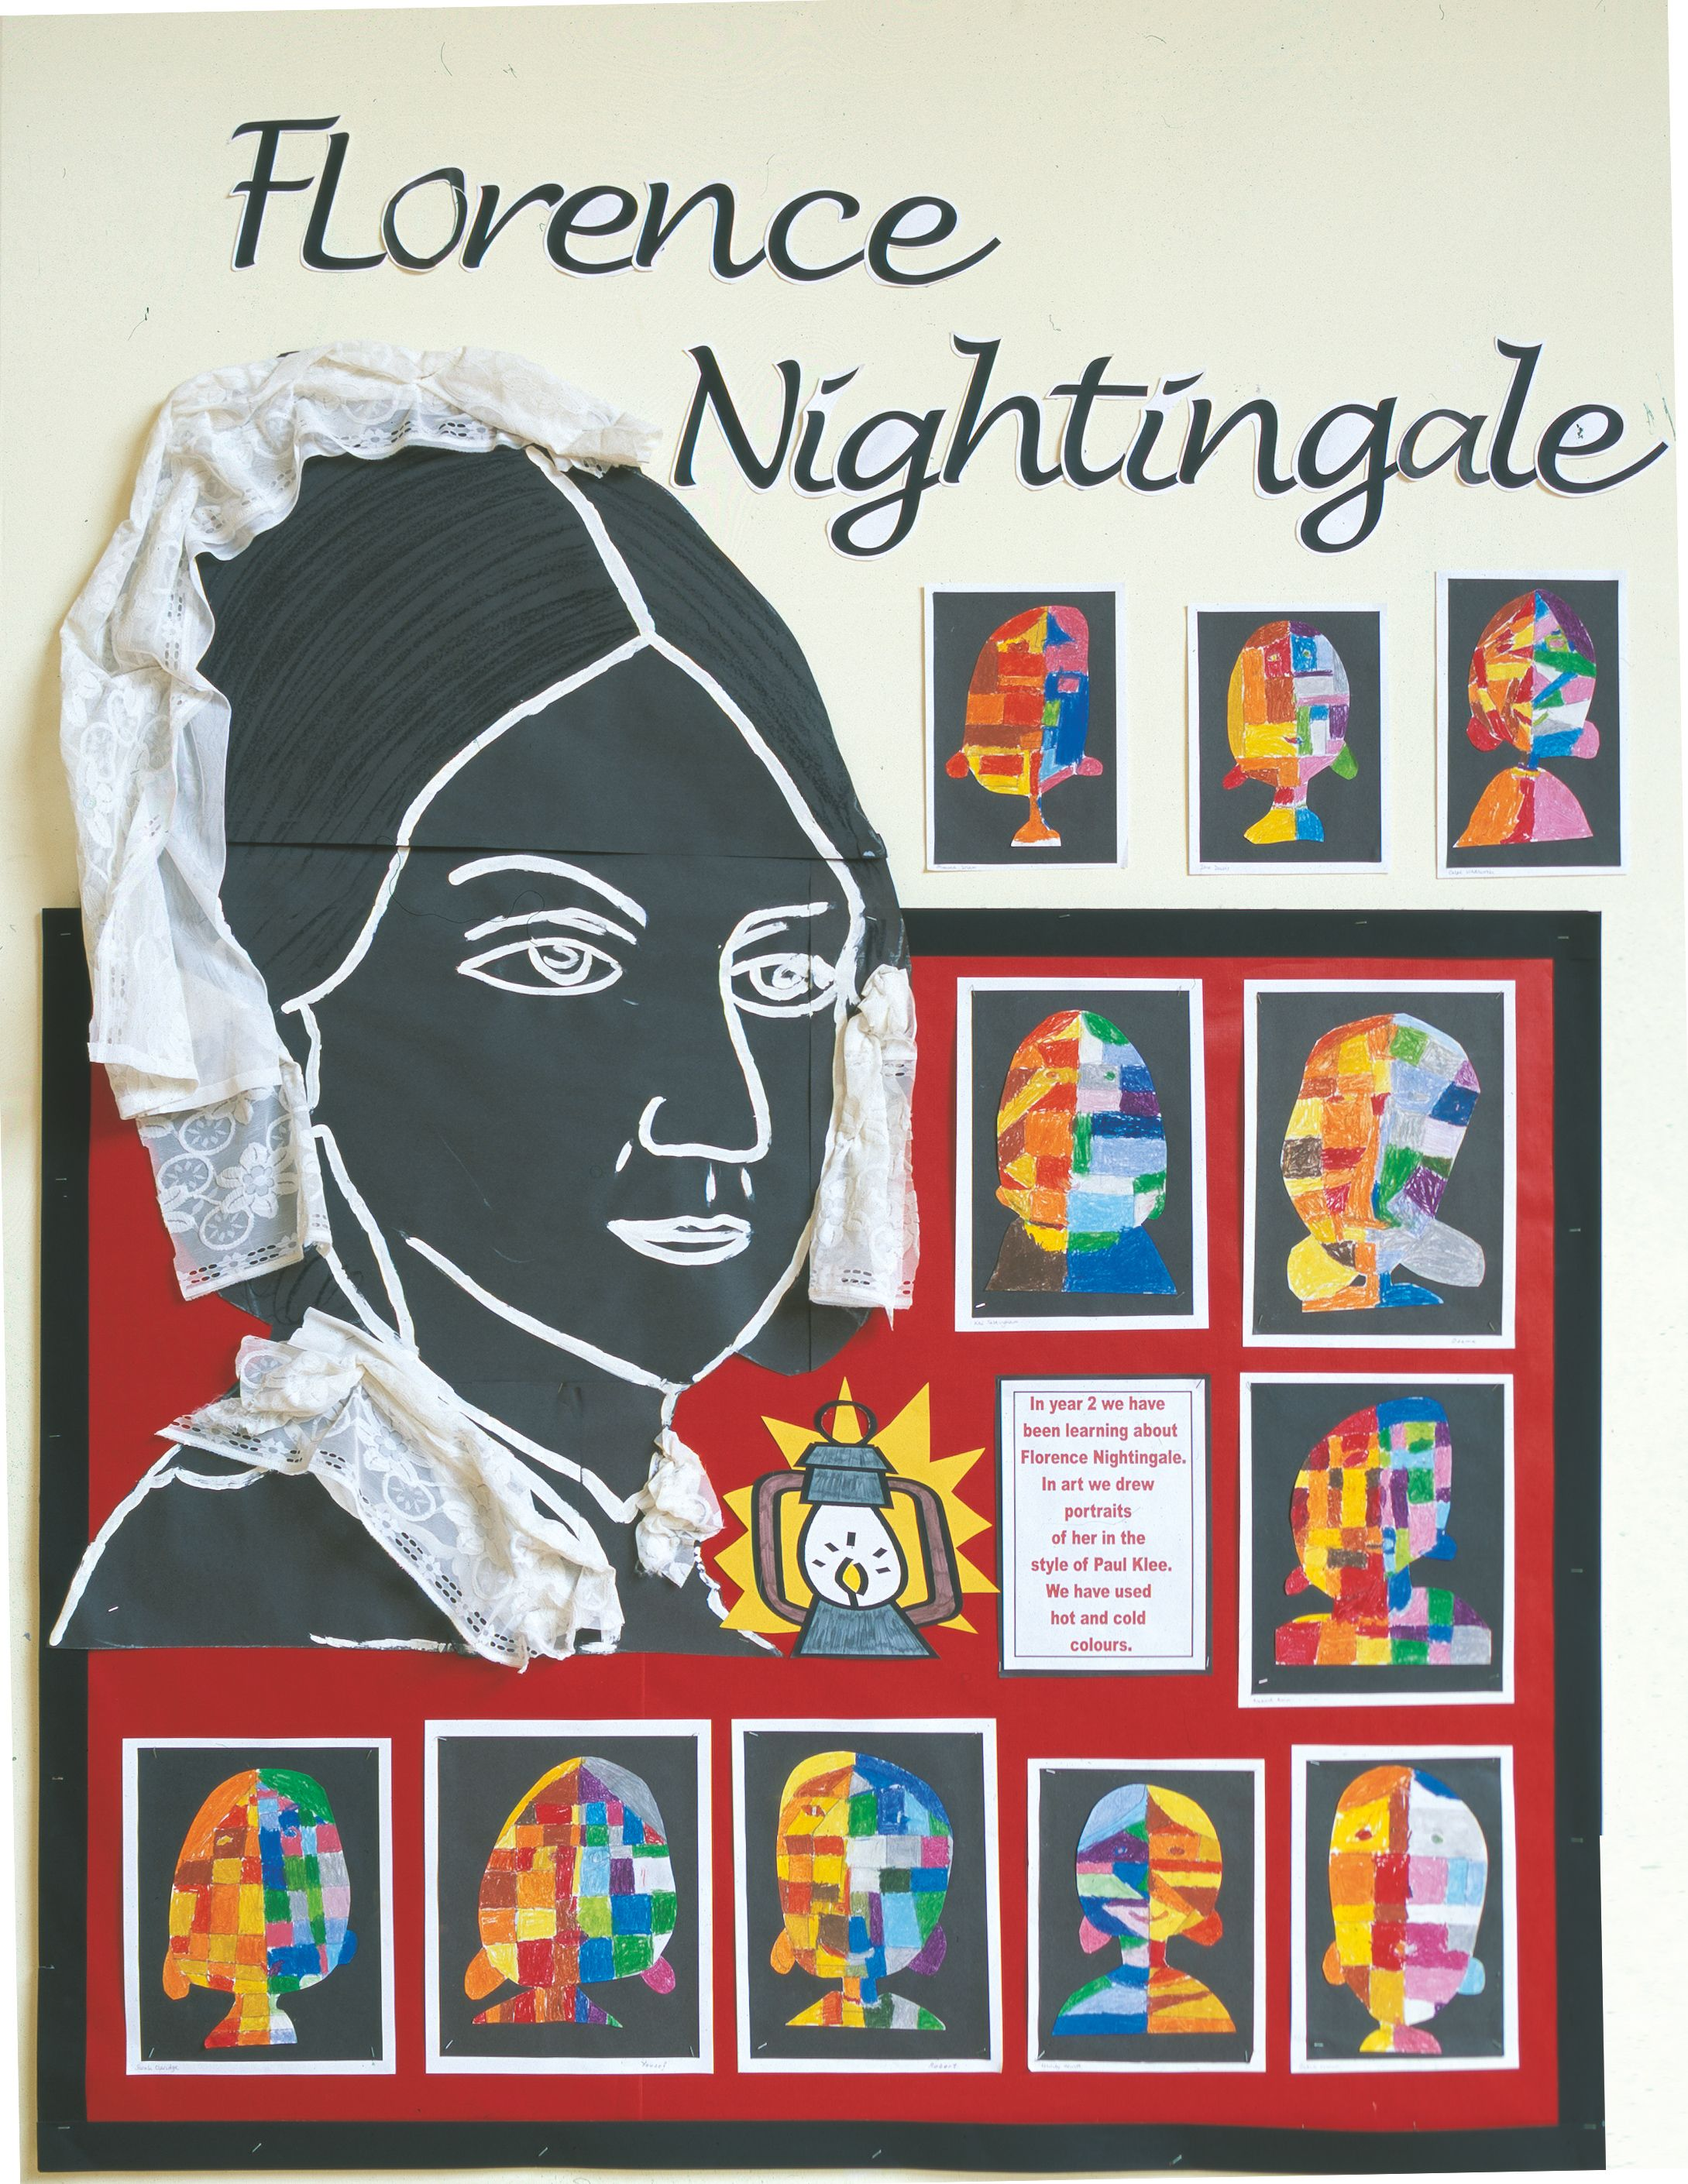 florence nightingale classroom resources library - photo#10